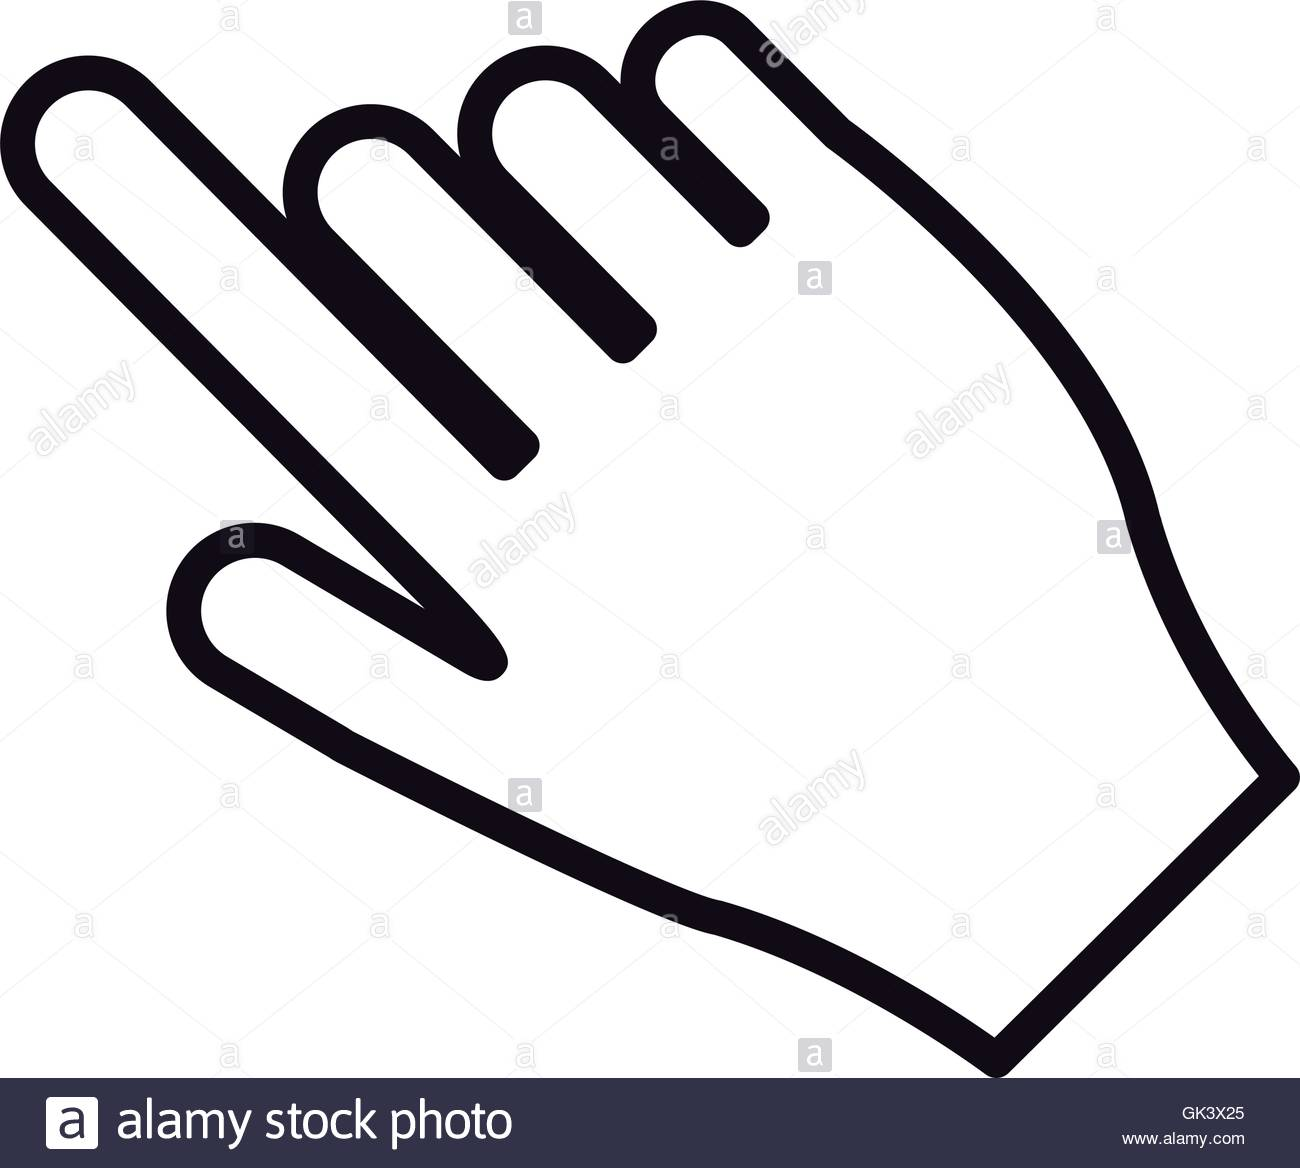 1300x1168 Hand Pointing With Index Finger Icon Stock Vector Art